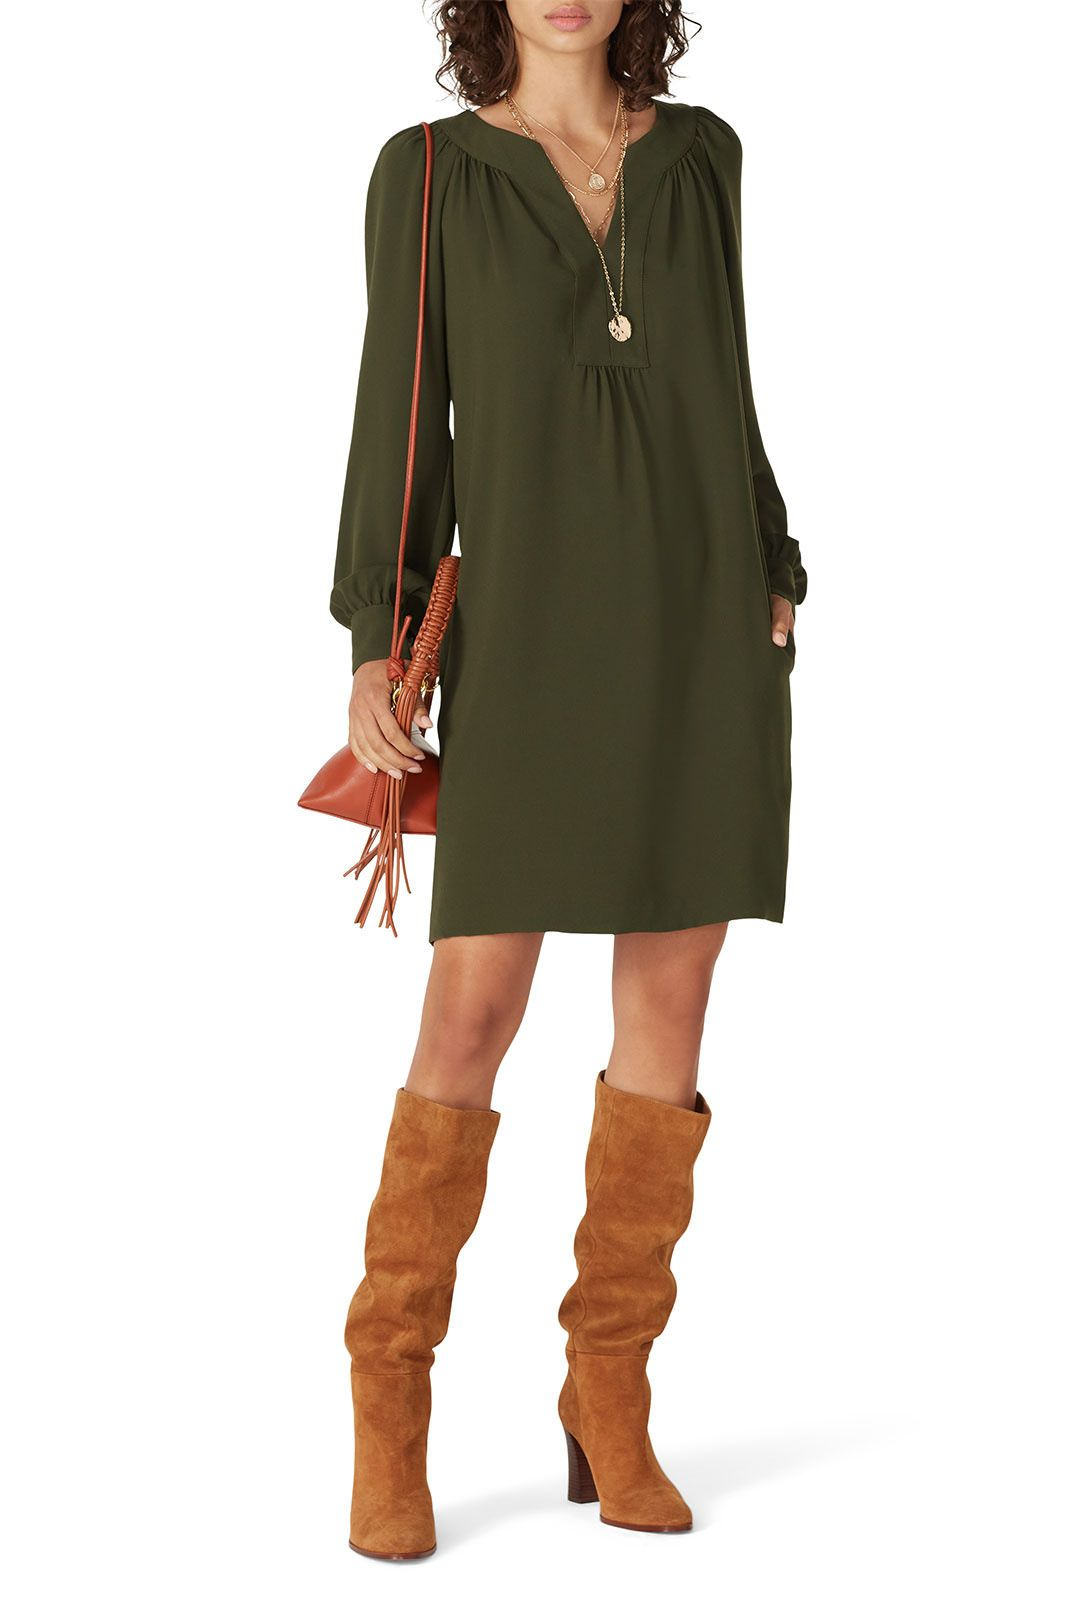 Rent Theda Dress By Trina Turk For 45 Only At Rent The Runway Trina Turk Dresses Trina